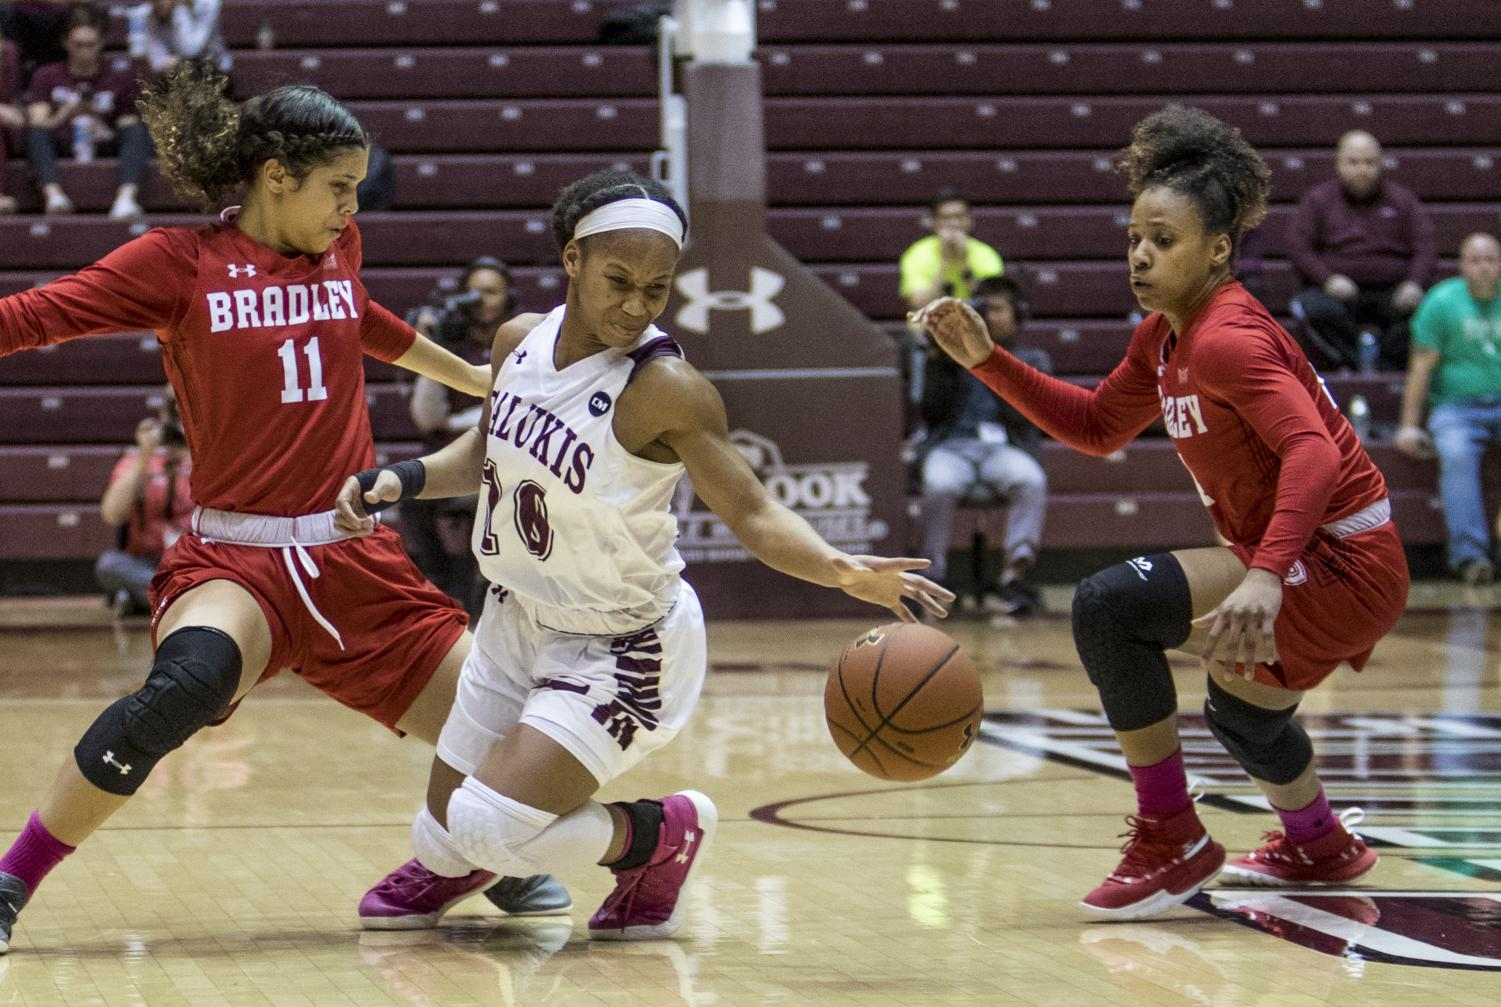 Saluki+junior+guard+Brittney+Patrick+fights+for+the+ball+on+Friday%2C+Feb.+15%2C+2019%2C+during+the+Salukis%27+55-62+win+against+the+Bradley+Braves+at+SIU+Arena.